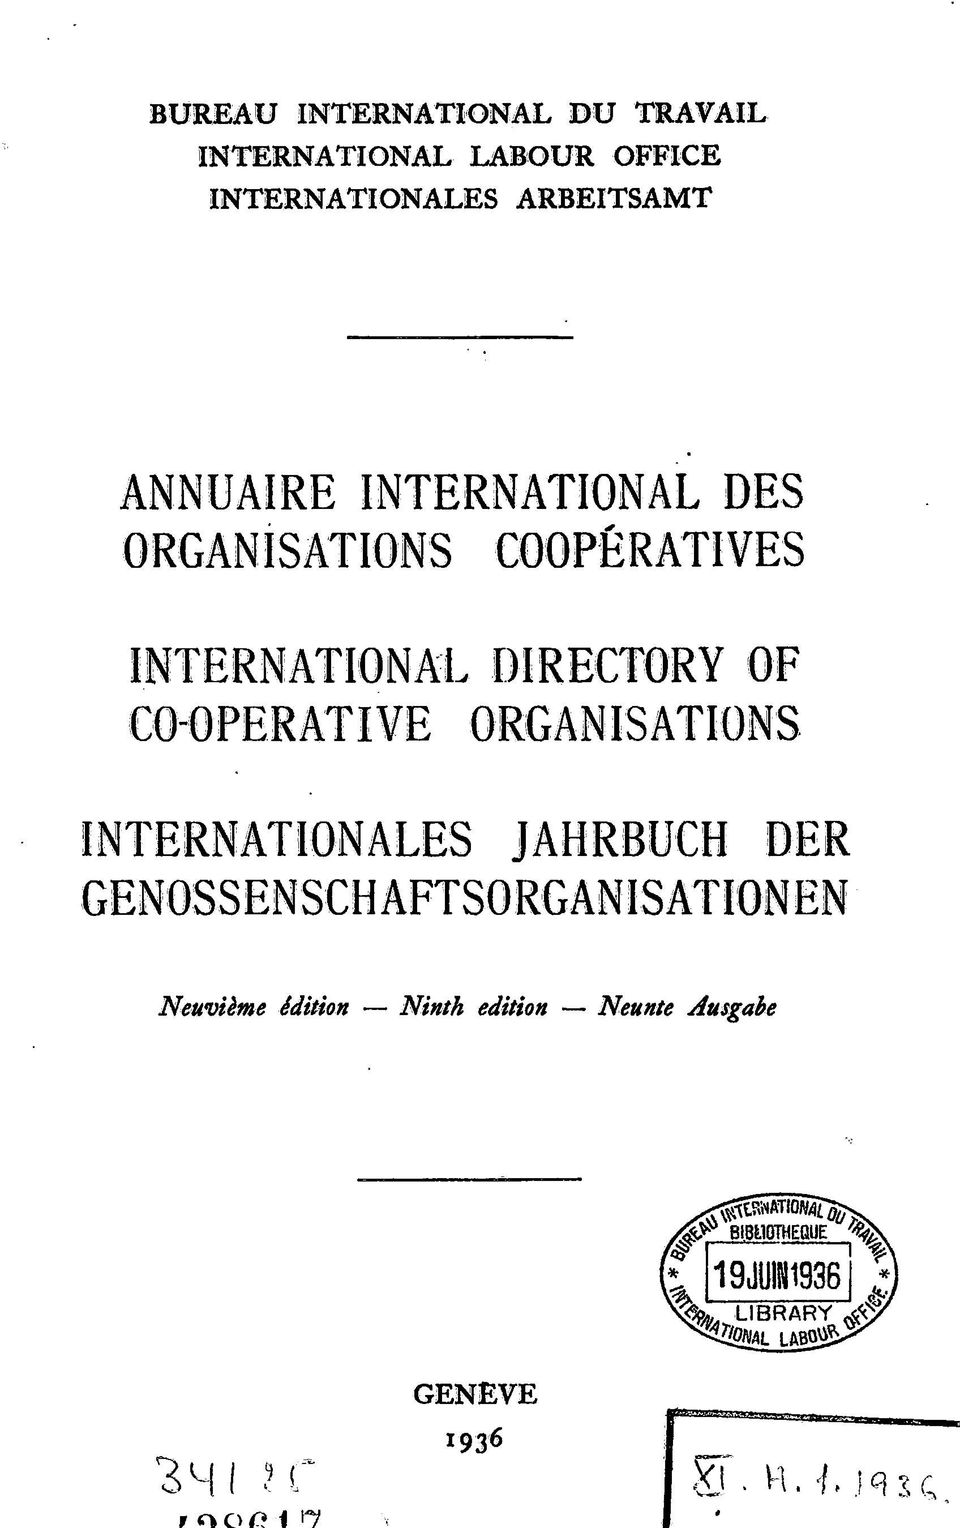 ORGANISATIONS COOPÉRATIVES INTERNATIONAL DIRECTORY OF